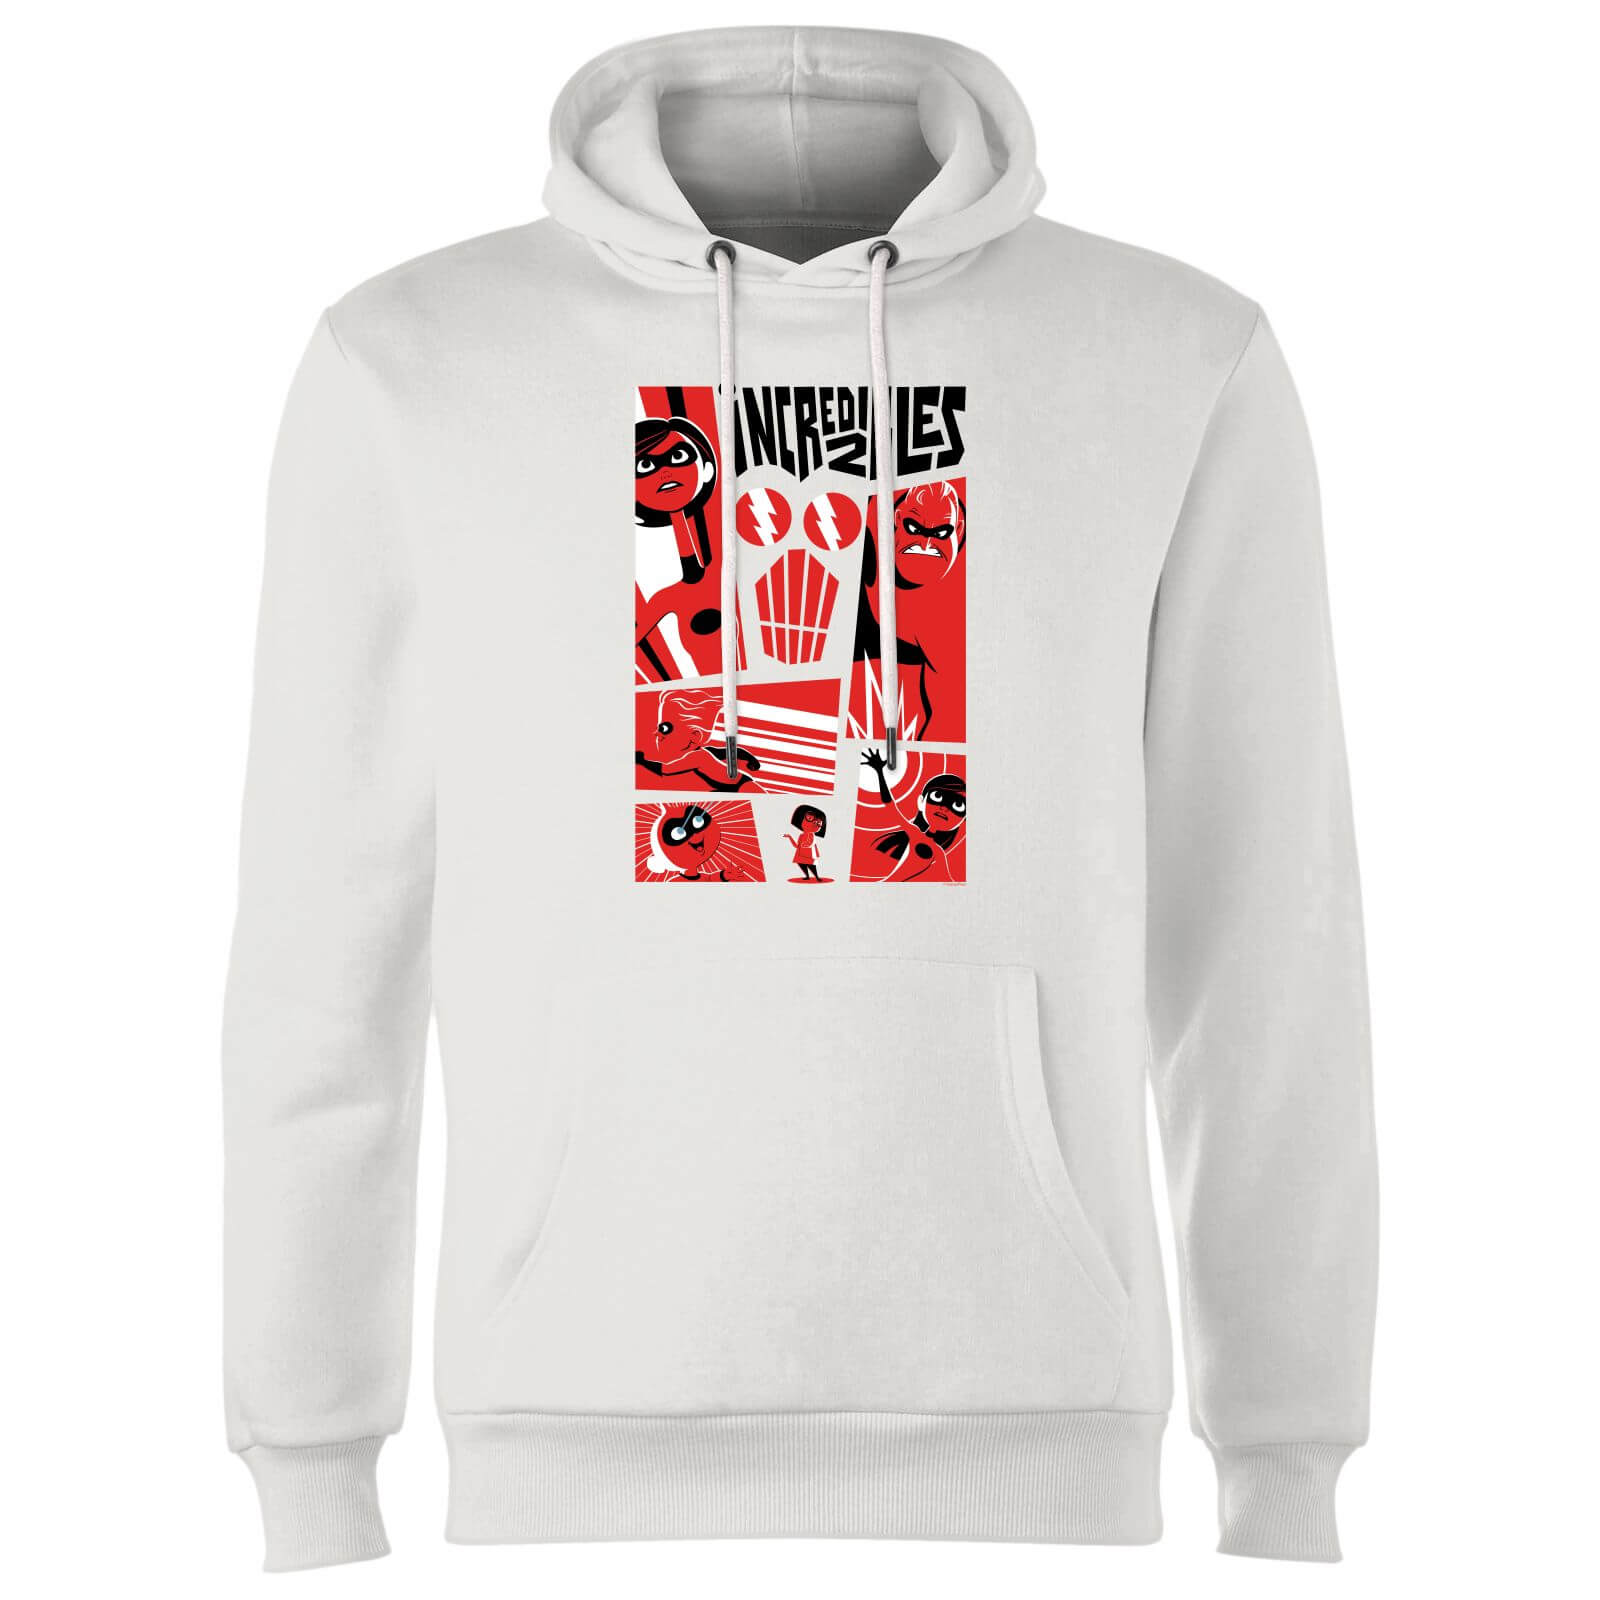 The Incredibles 2 Poster Hoodie - White